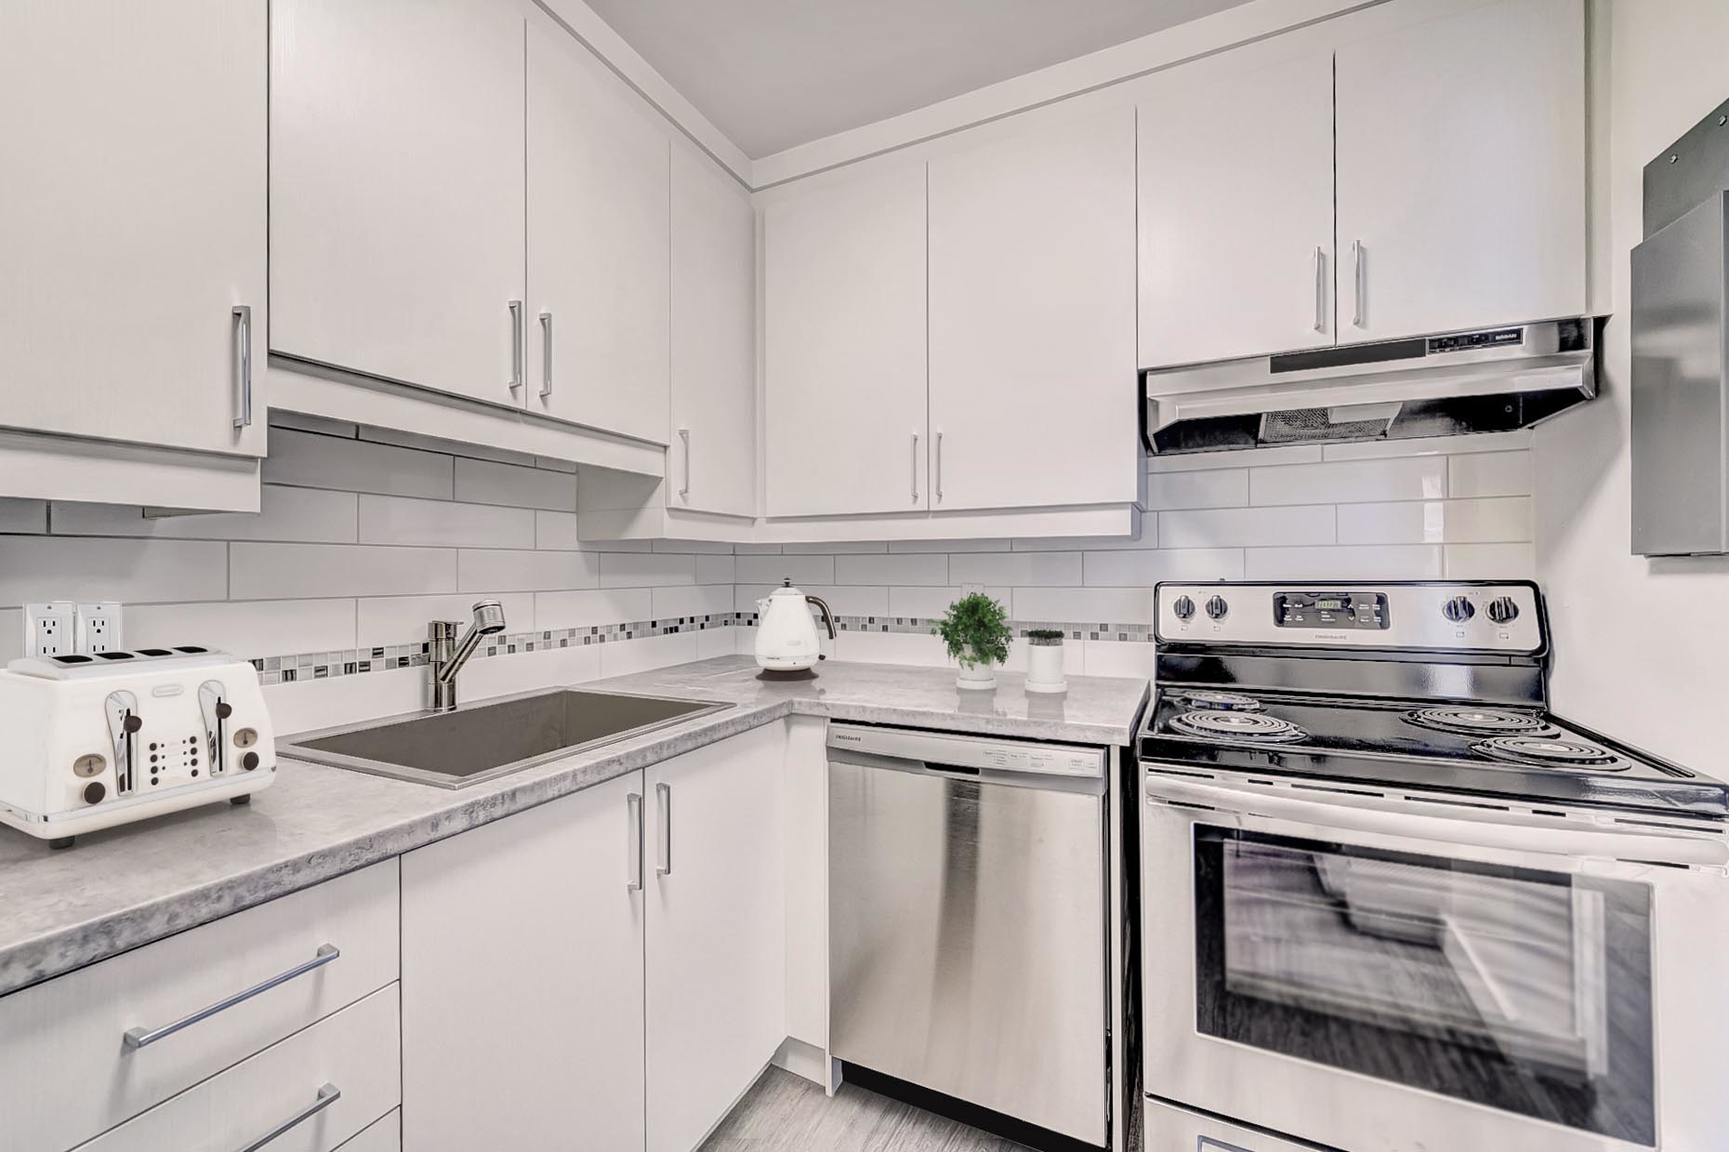 1 bedroom Apartments for rent in Nuns' Island at PH 3 - 3 Walk-up - Photo 02 - RentQuebecApartments – L407171